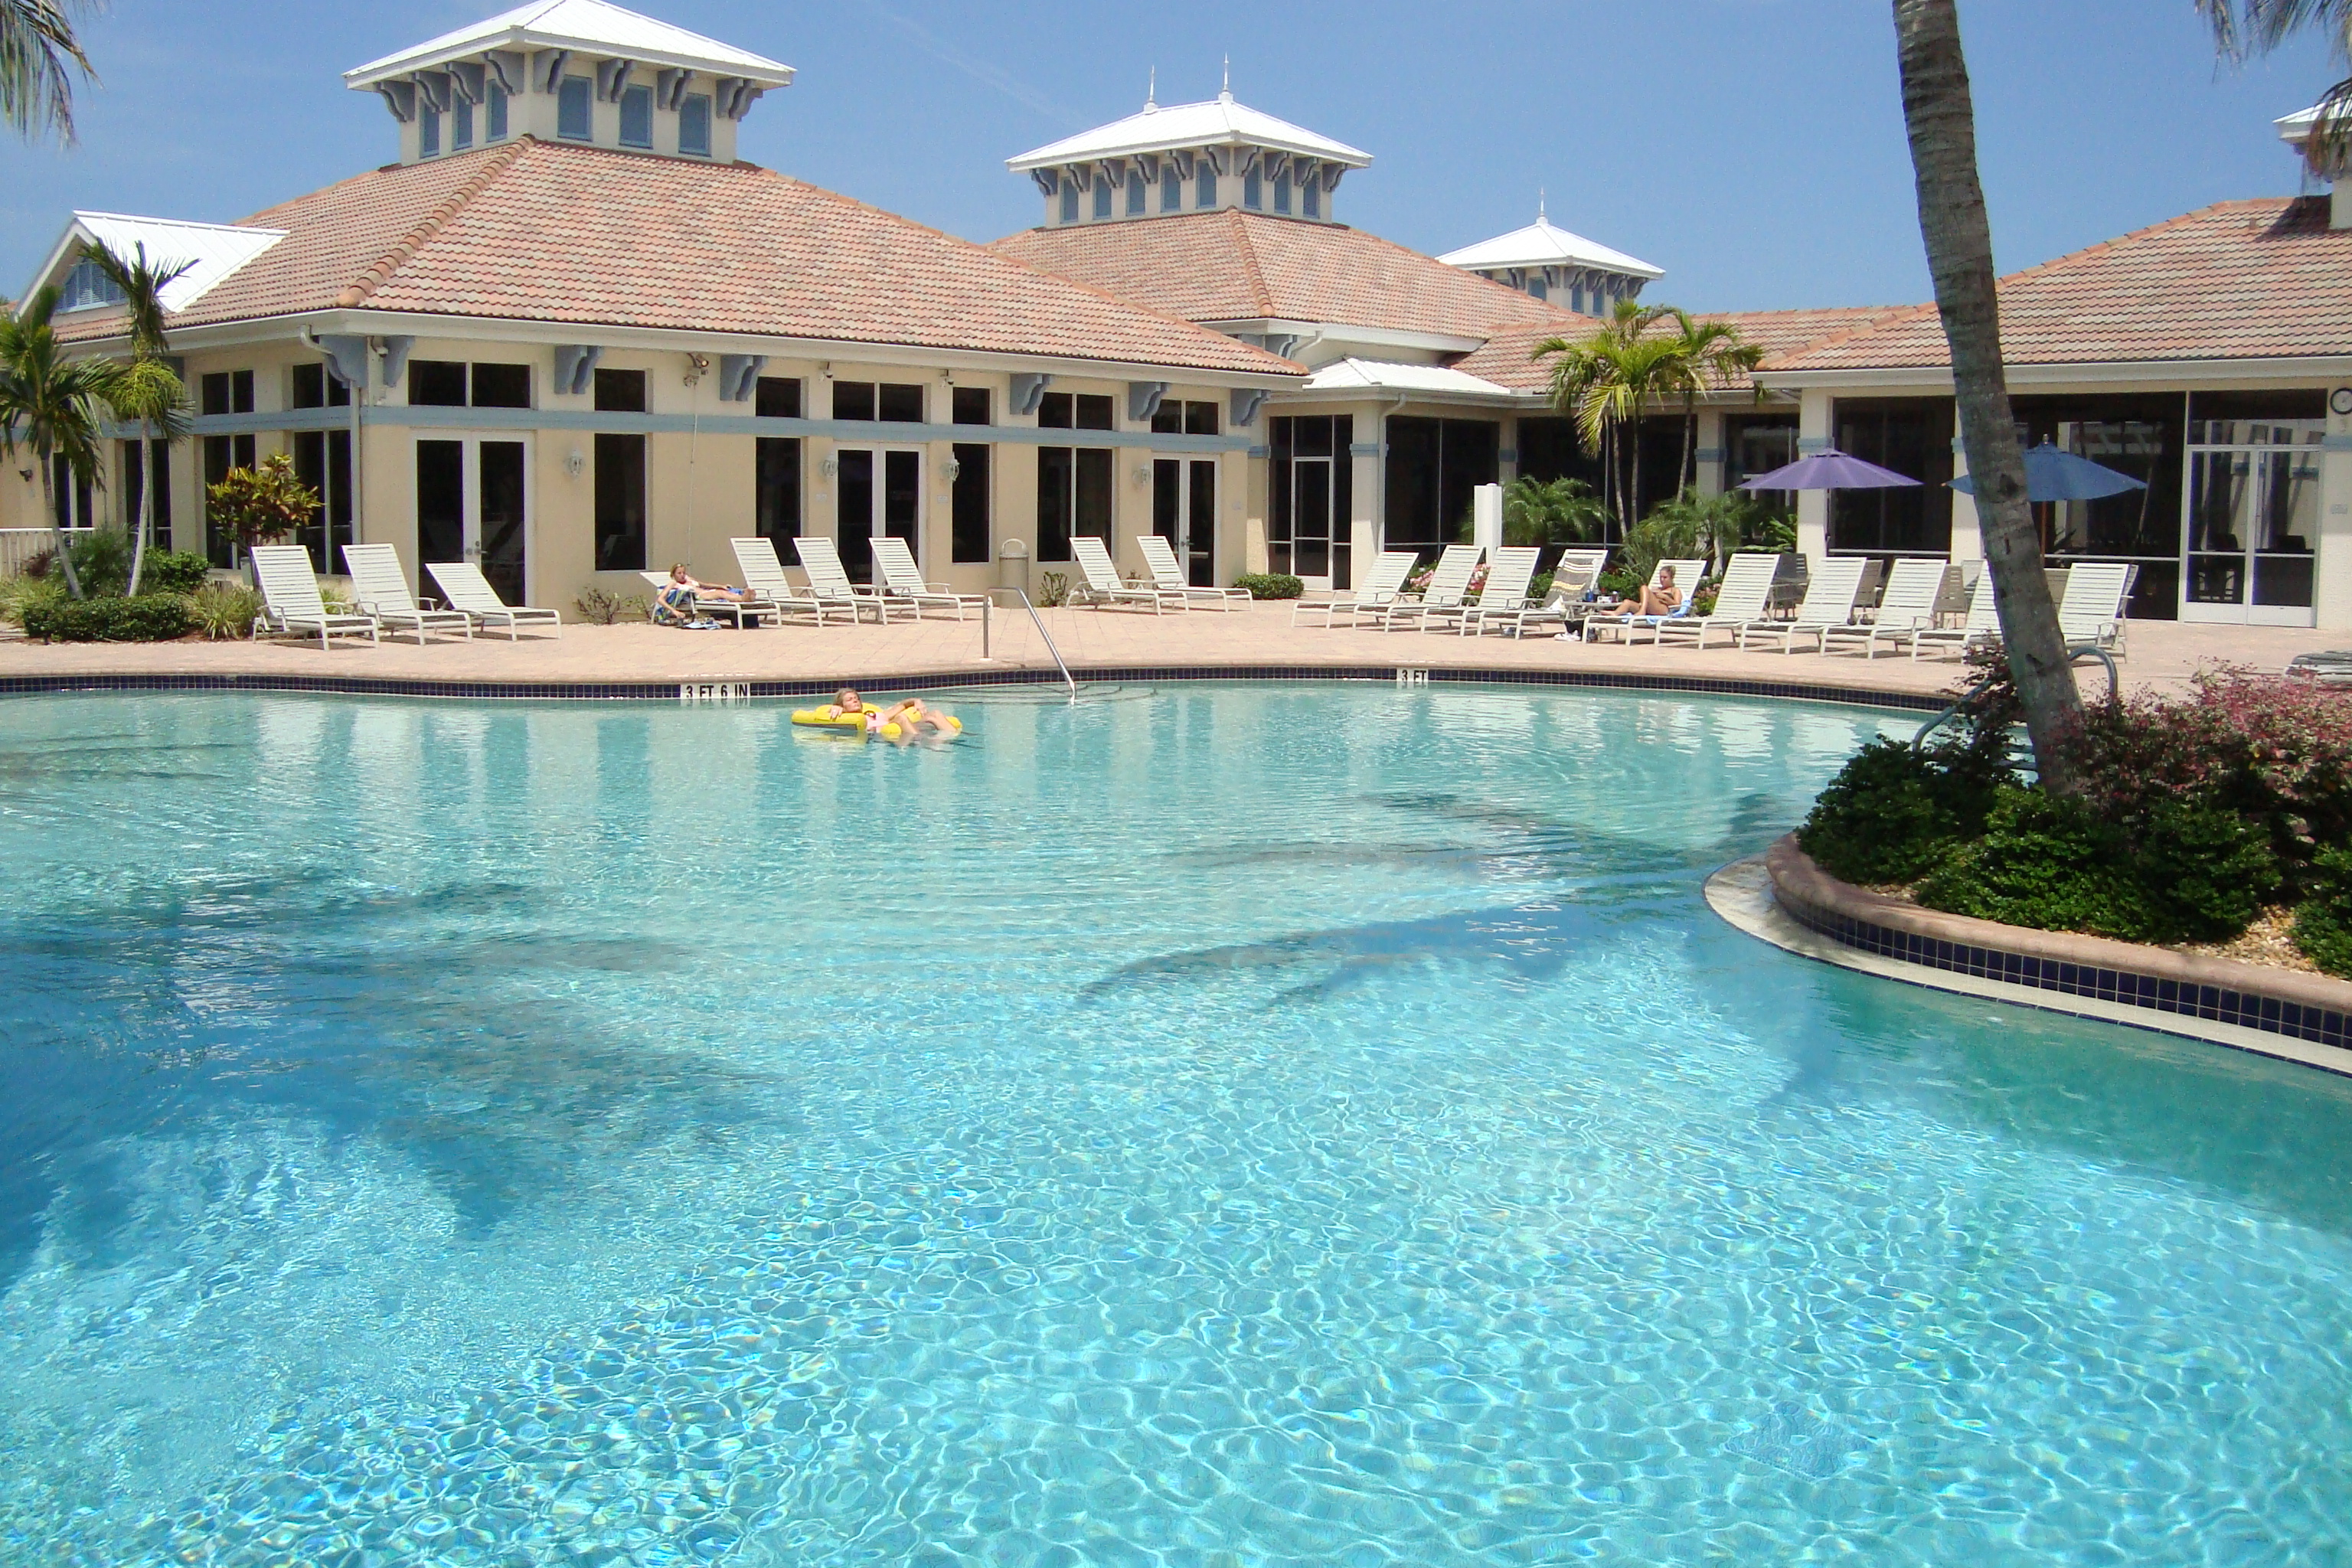 Pool and clubhouse at Bridgewater Bay in Naples, Florida.